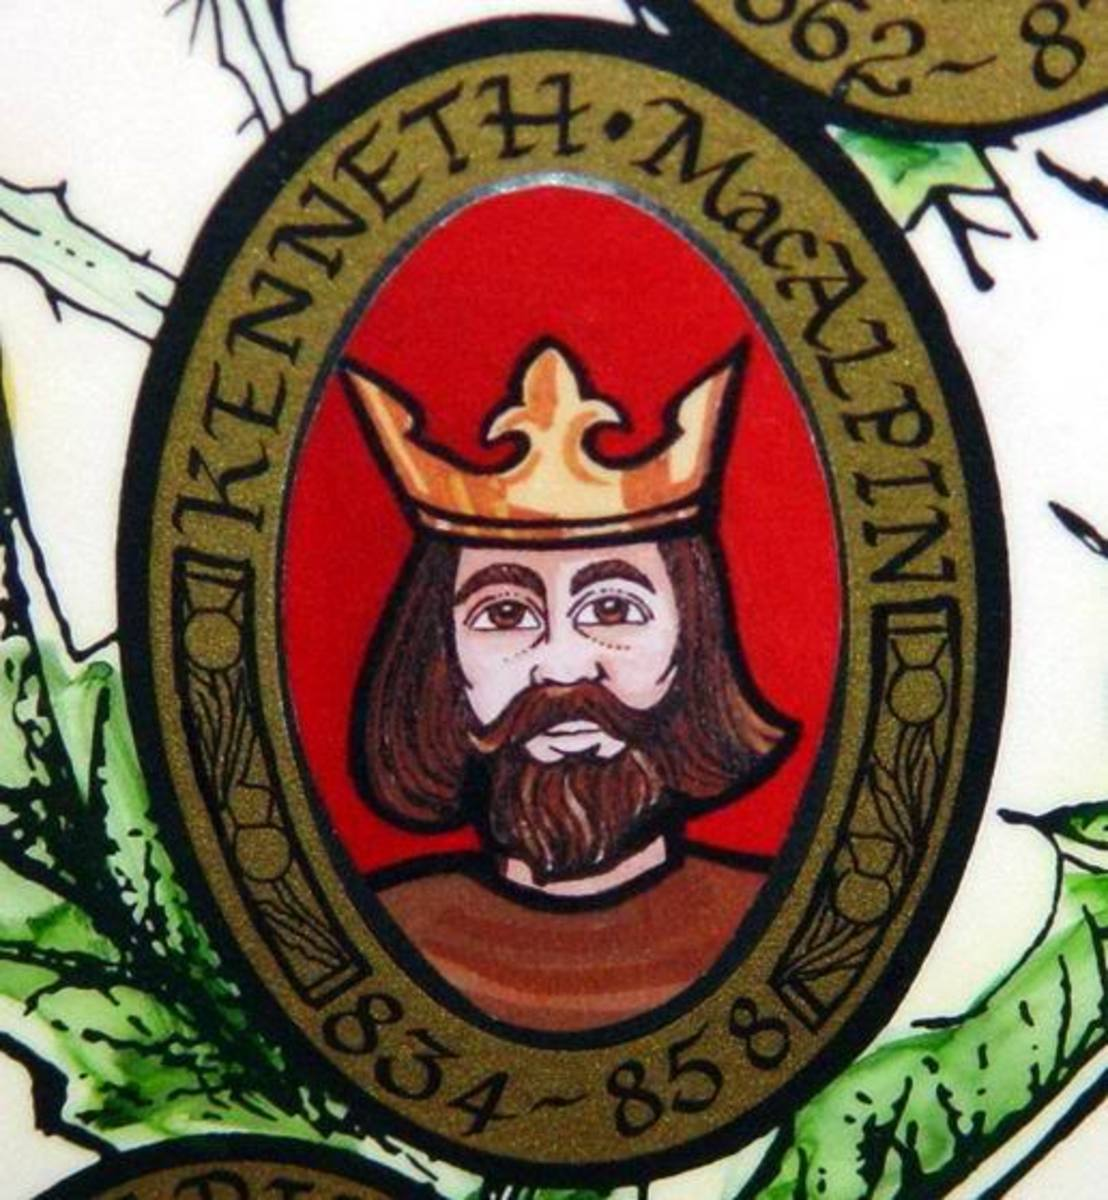 FIRST KING OF SCOTLAND KENNETH MACALPIN